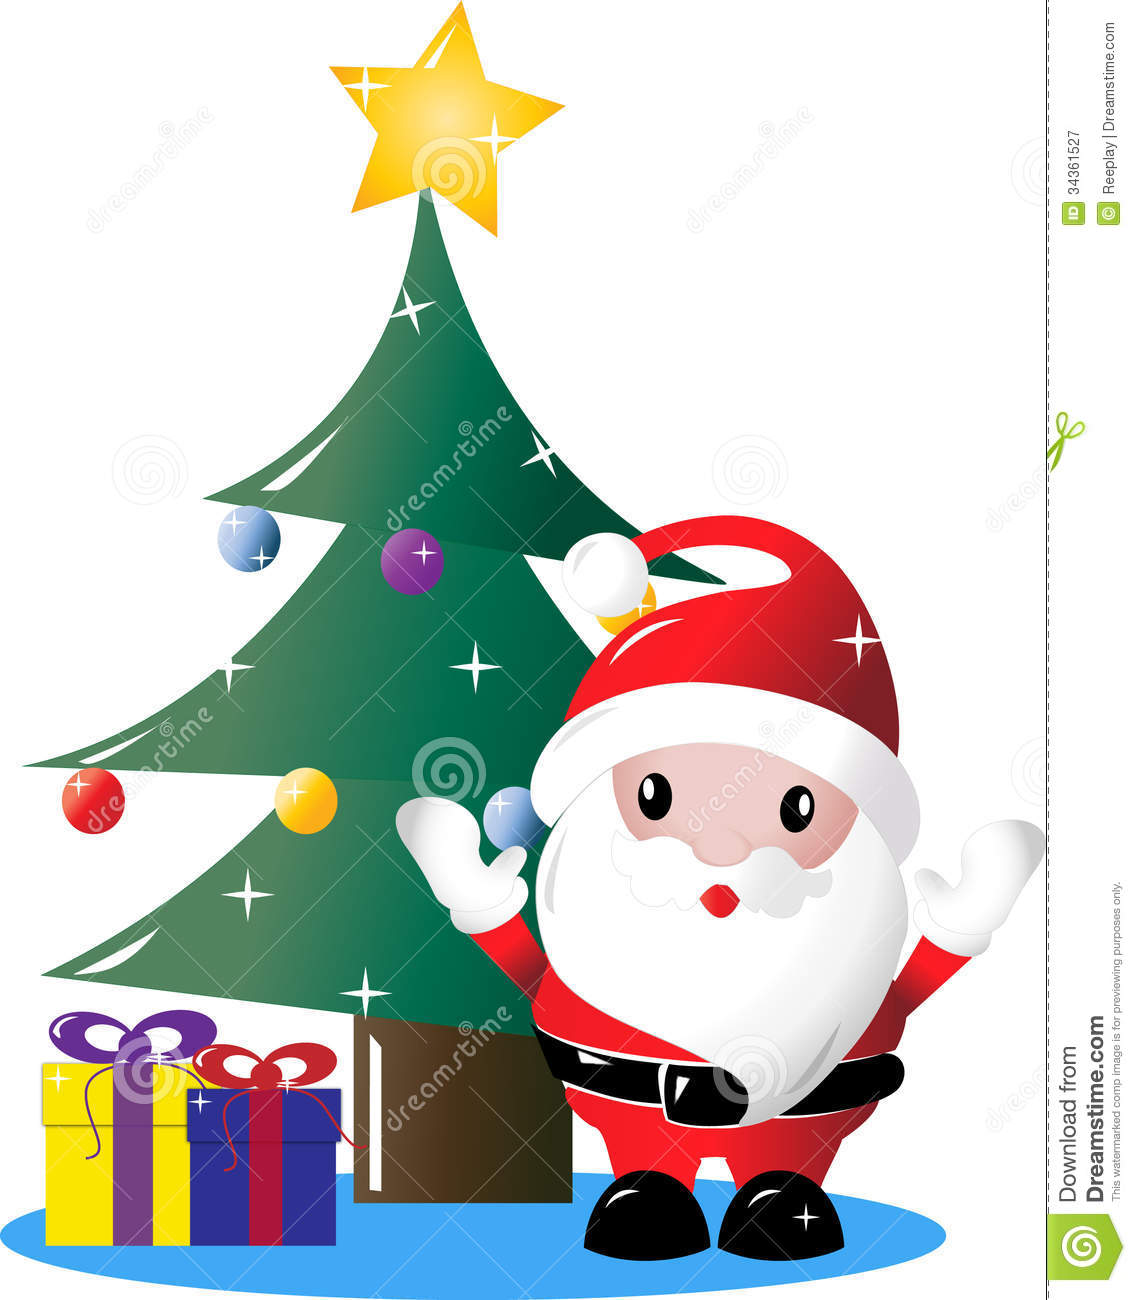 Santa Under Christmas Tree With Presents Royalty Free Stock ...